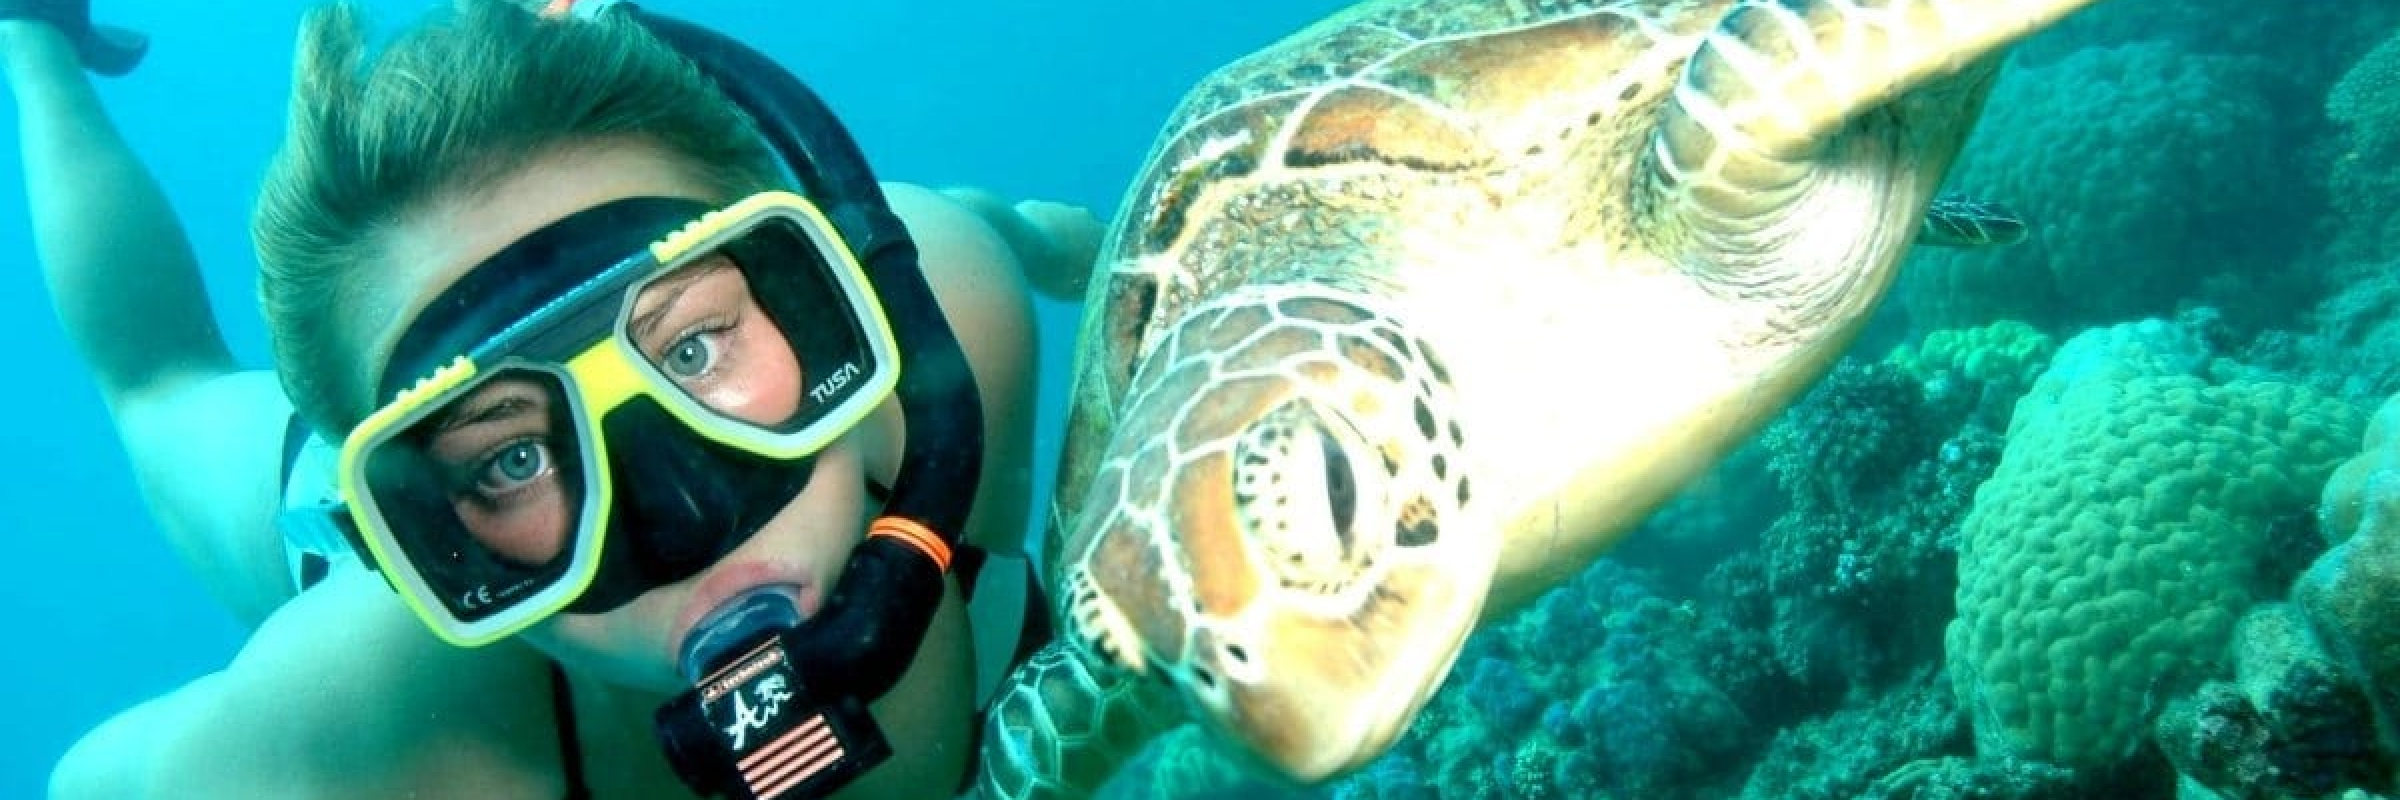 Big-Fury-Snorkelling-with-Turtle-2400x800_xx